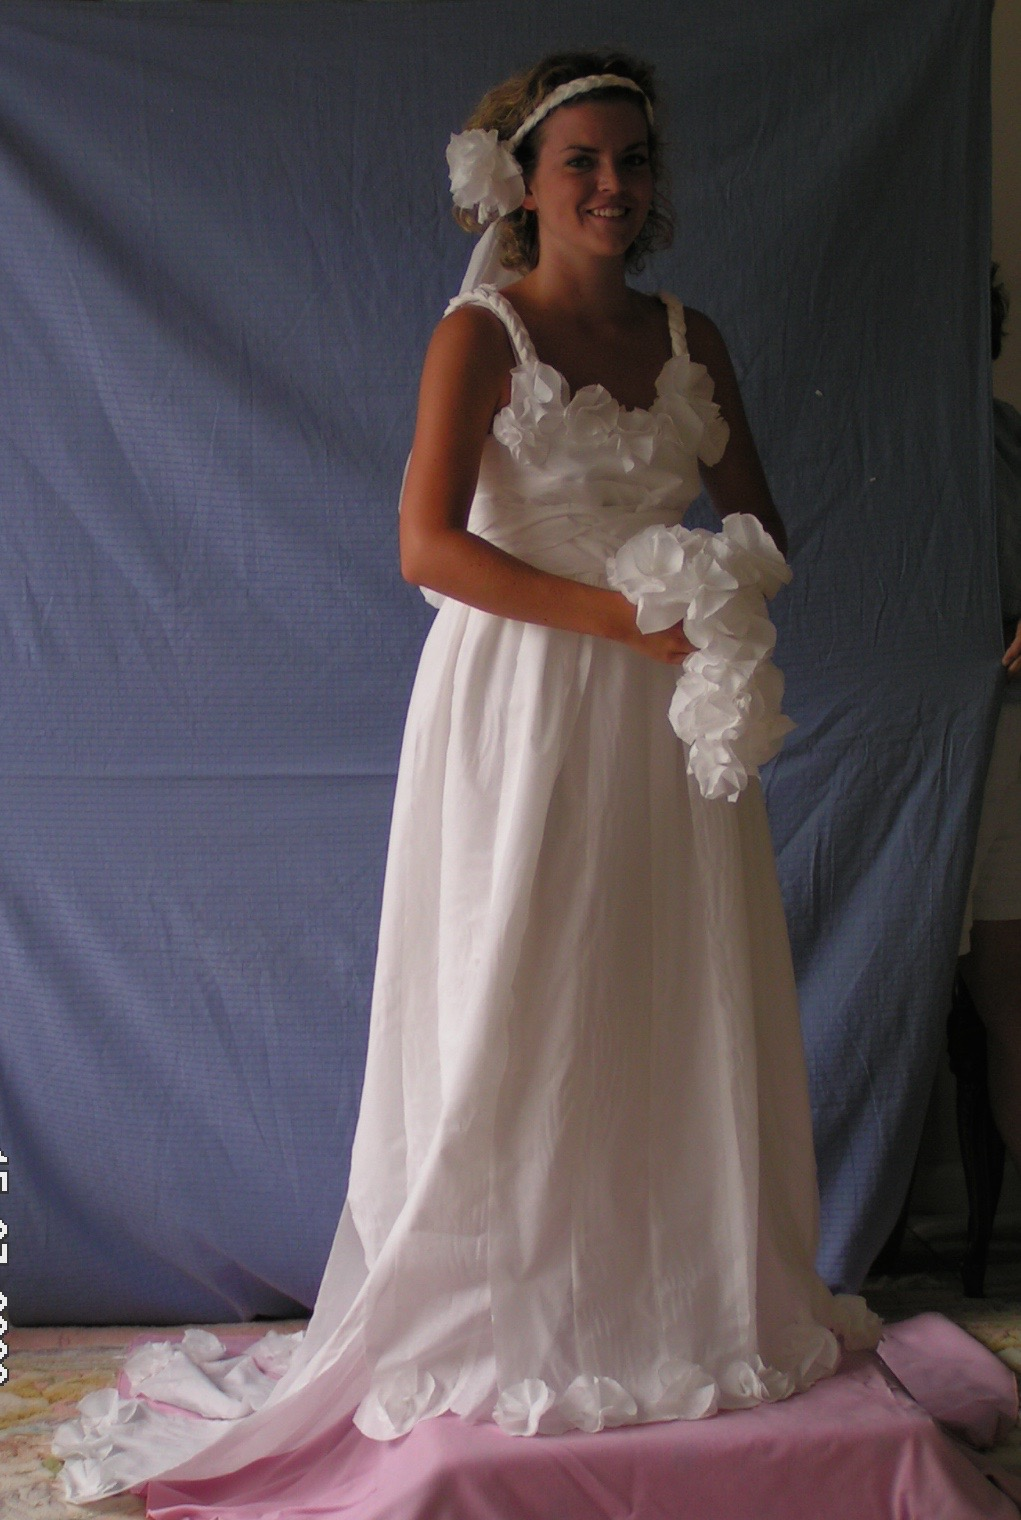 The 2006 Toilet Paper Wedding Dress Contest